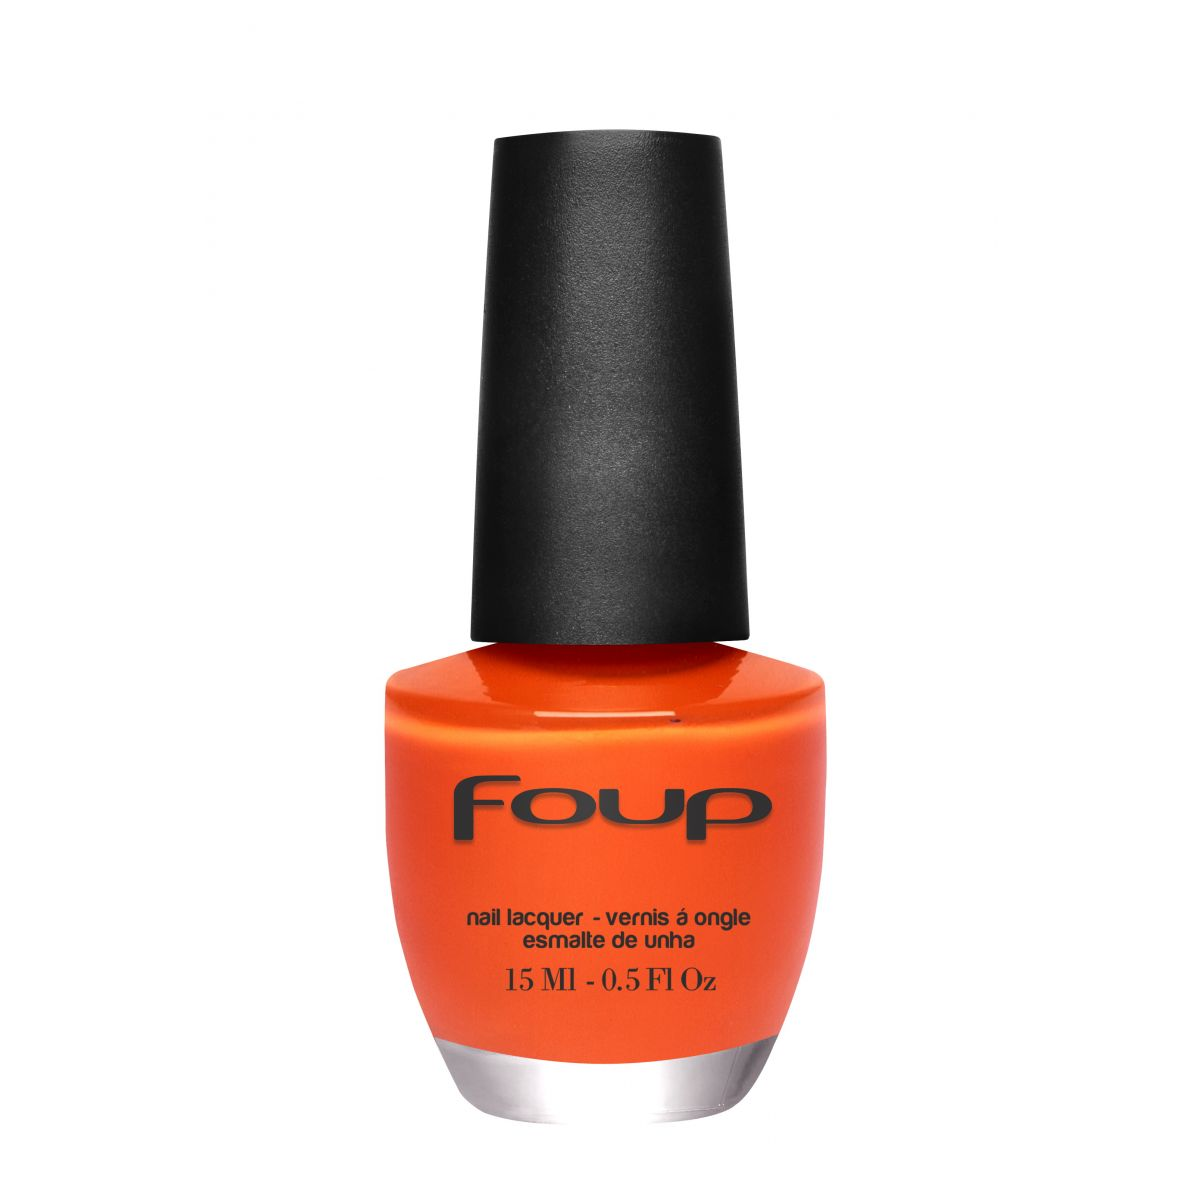 Esmalte Cremoso Orange da Marca Foup - 15ml